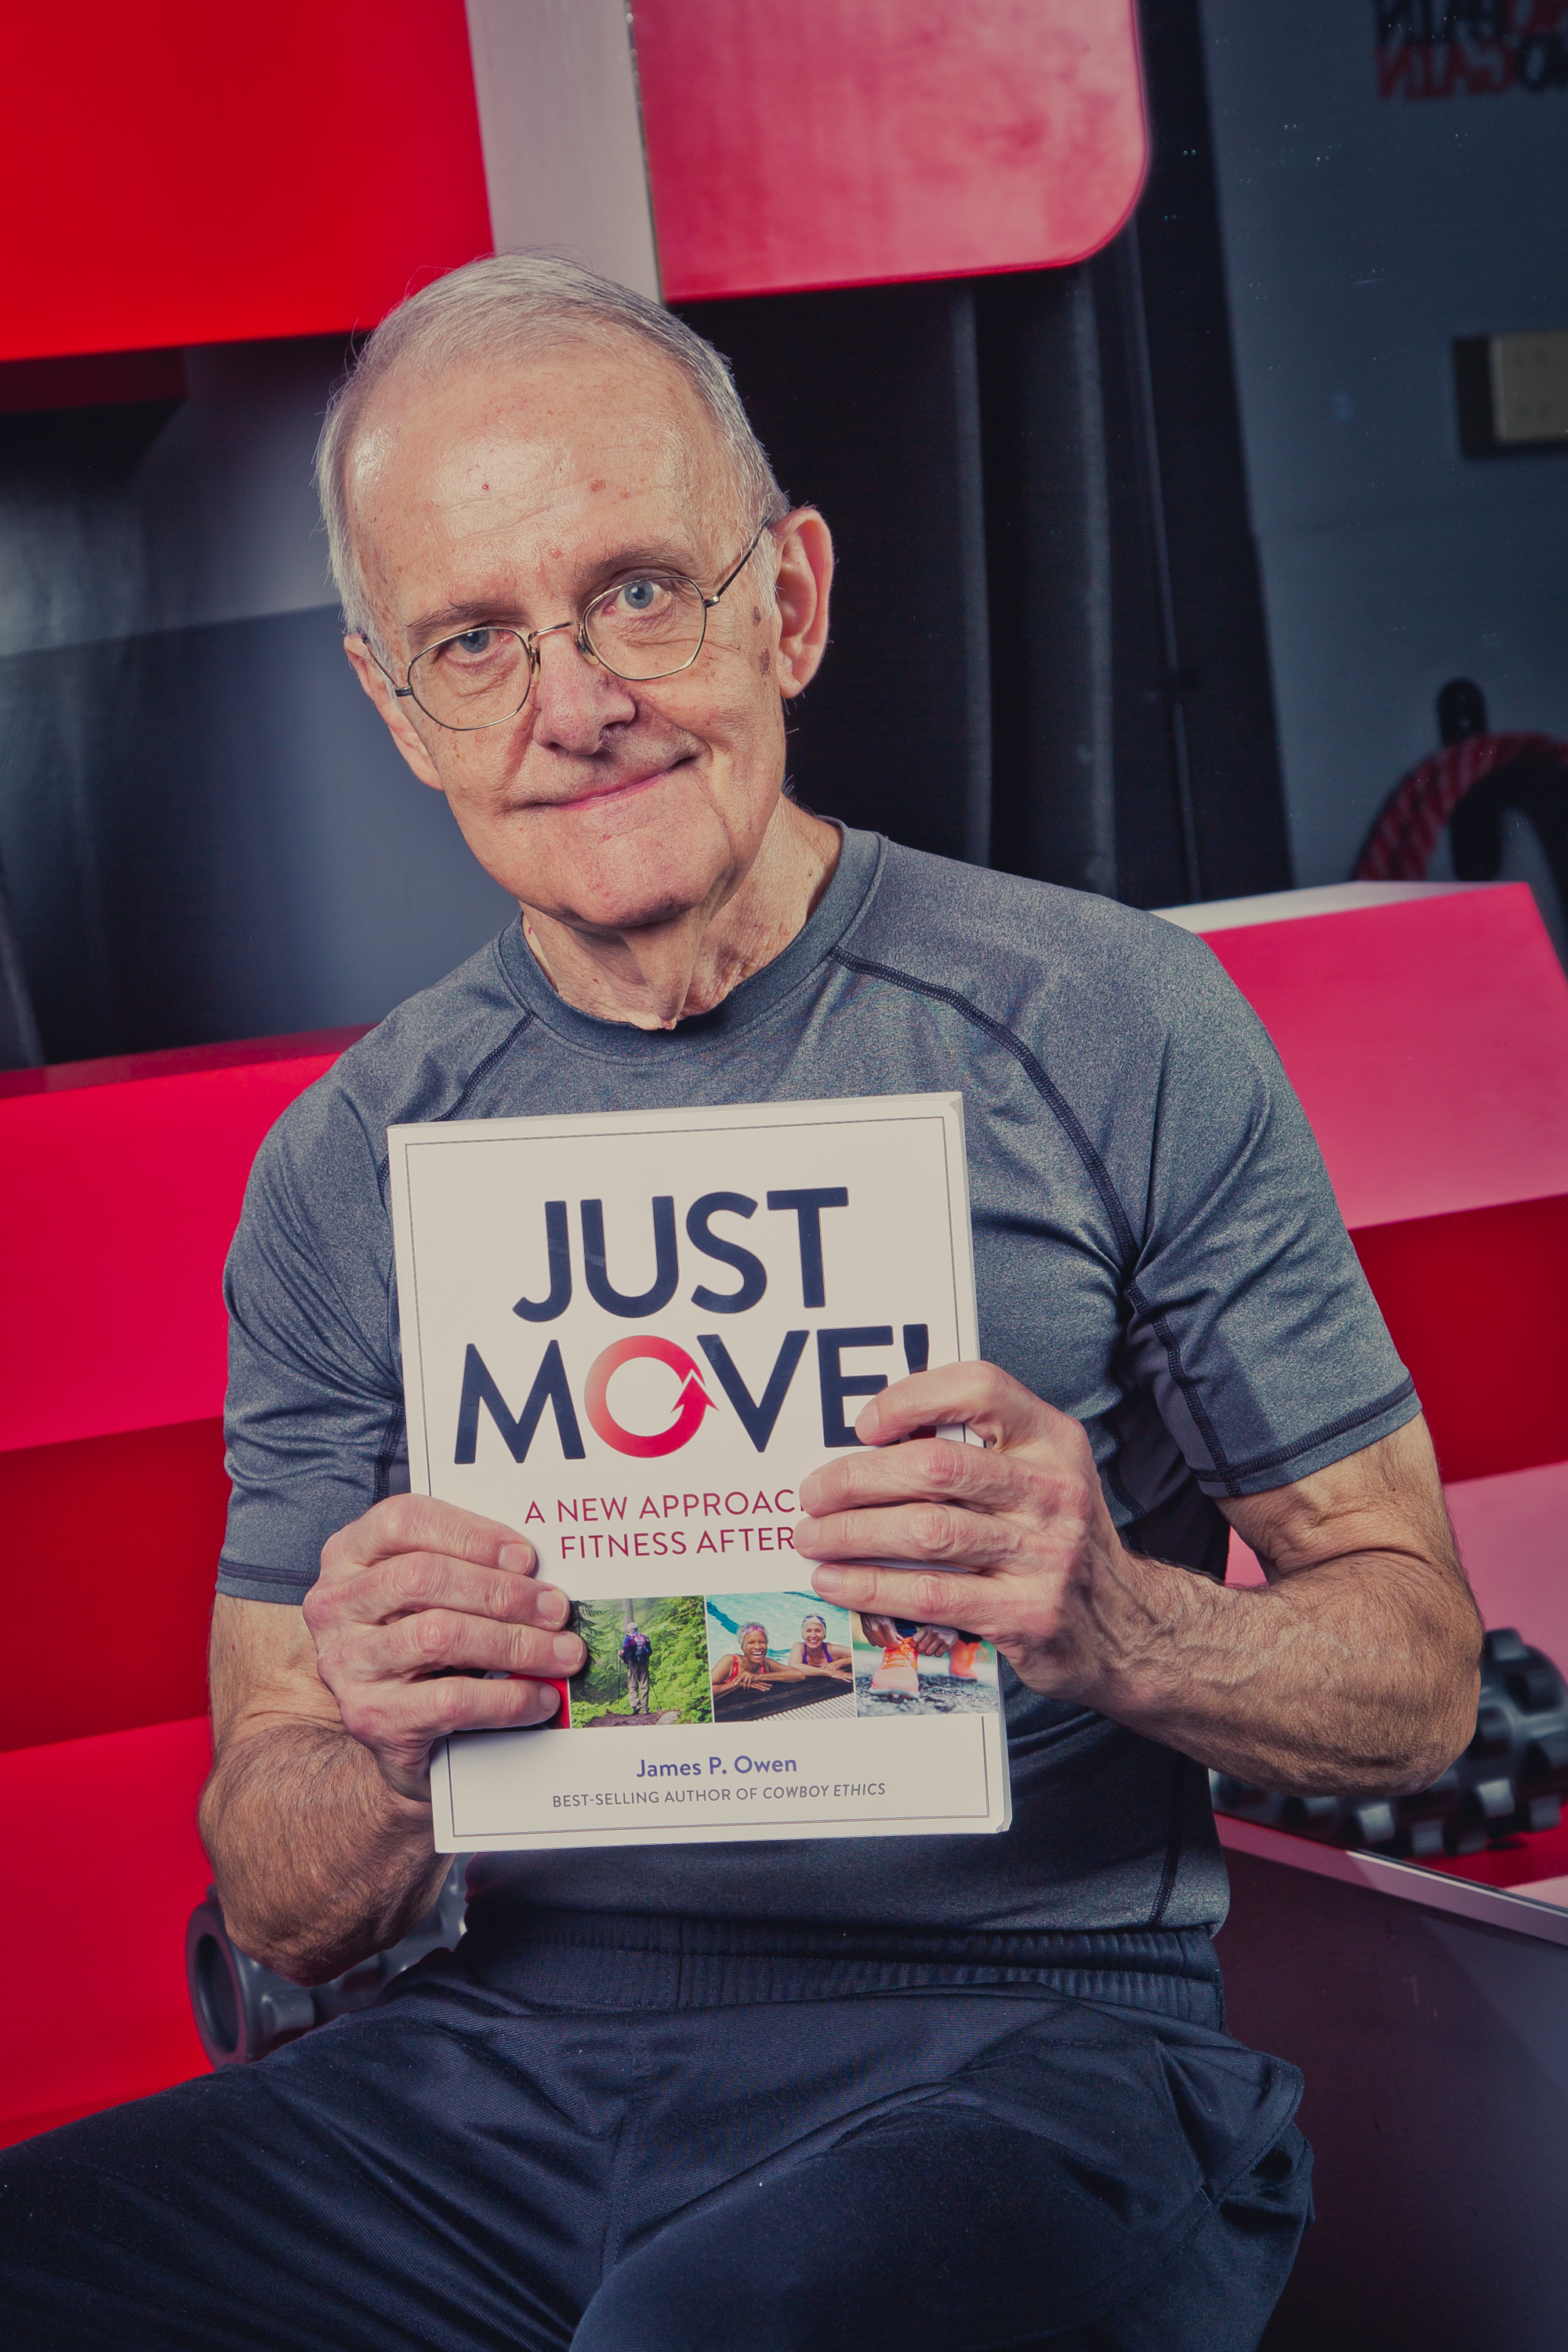 Jim Owen With Book Just Move!